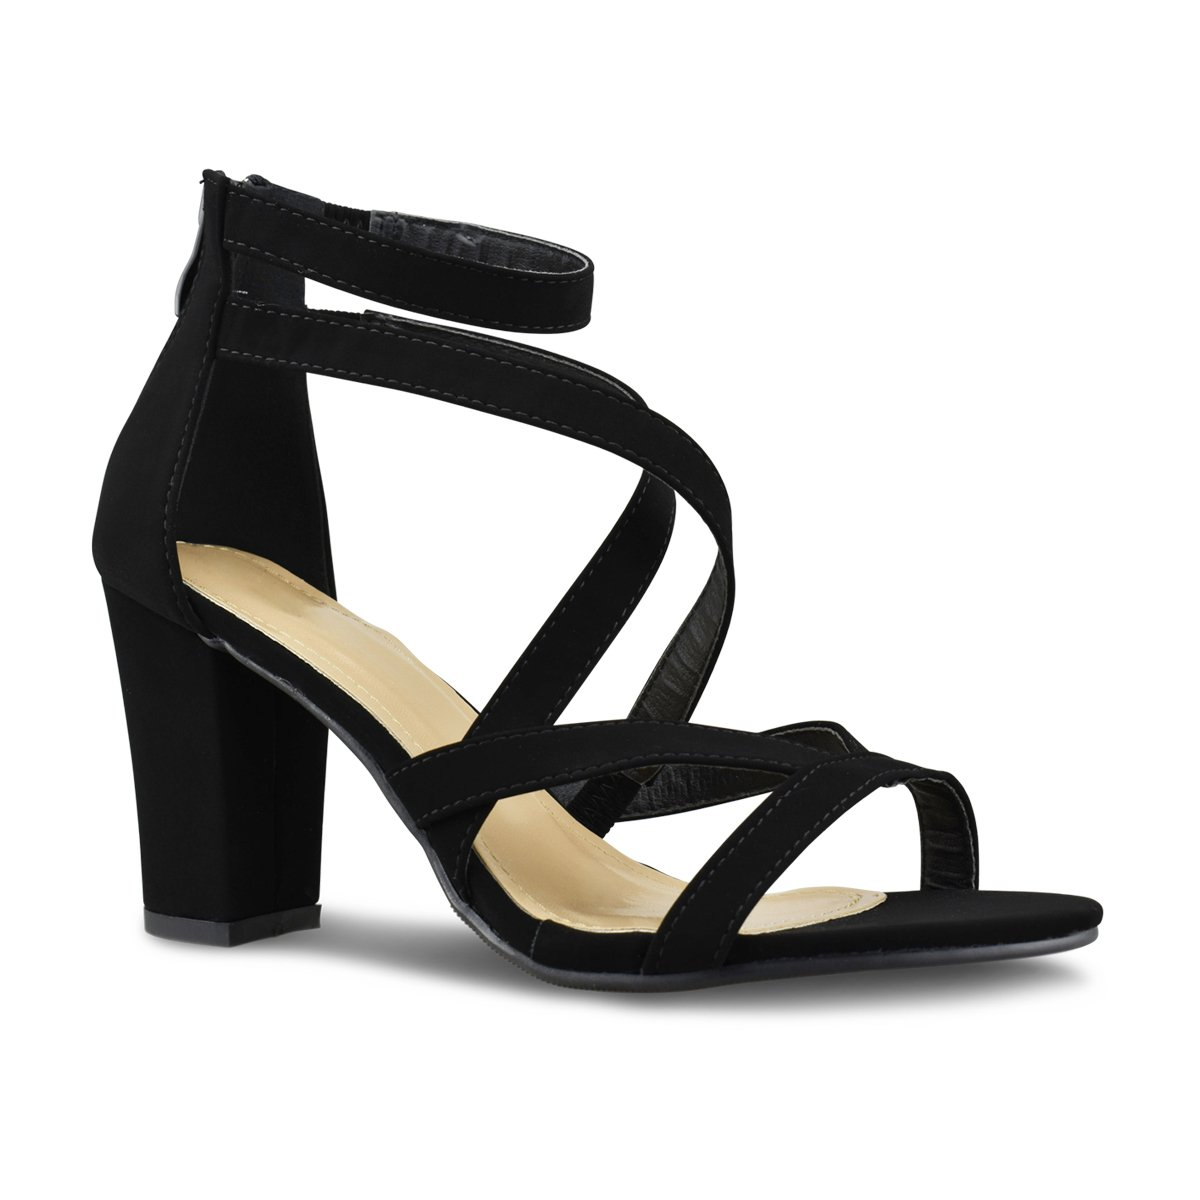 7ba41a00a3 Amazon.com | Premier Standard Classified Handle Womens Strappy Open Toe  High Chunky Heel - Sexy Stacked Heel Sandal - Cute Strappy Shoe | Heeled  Sandals